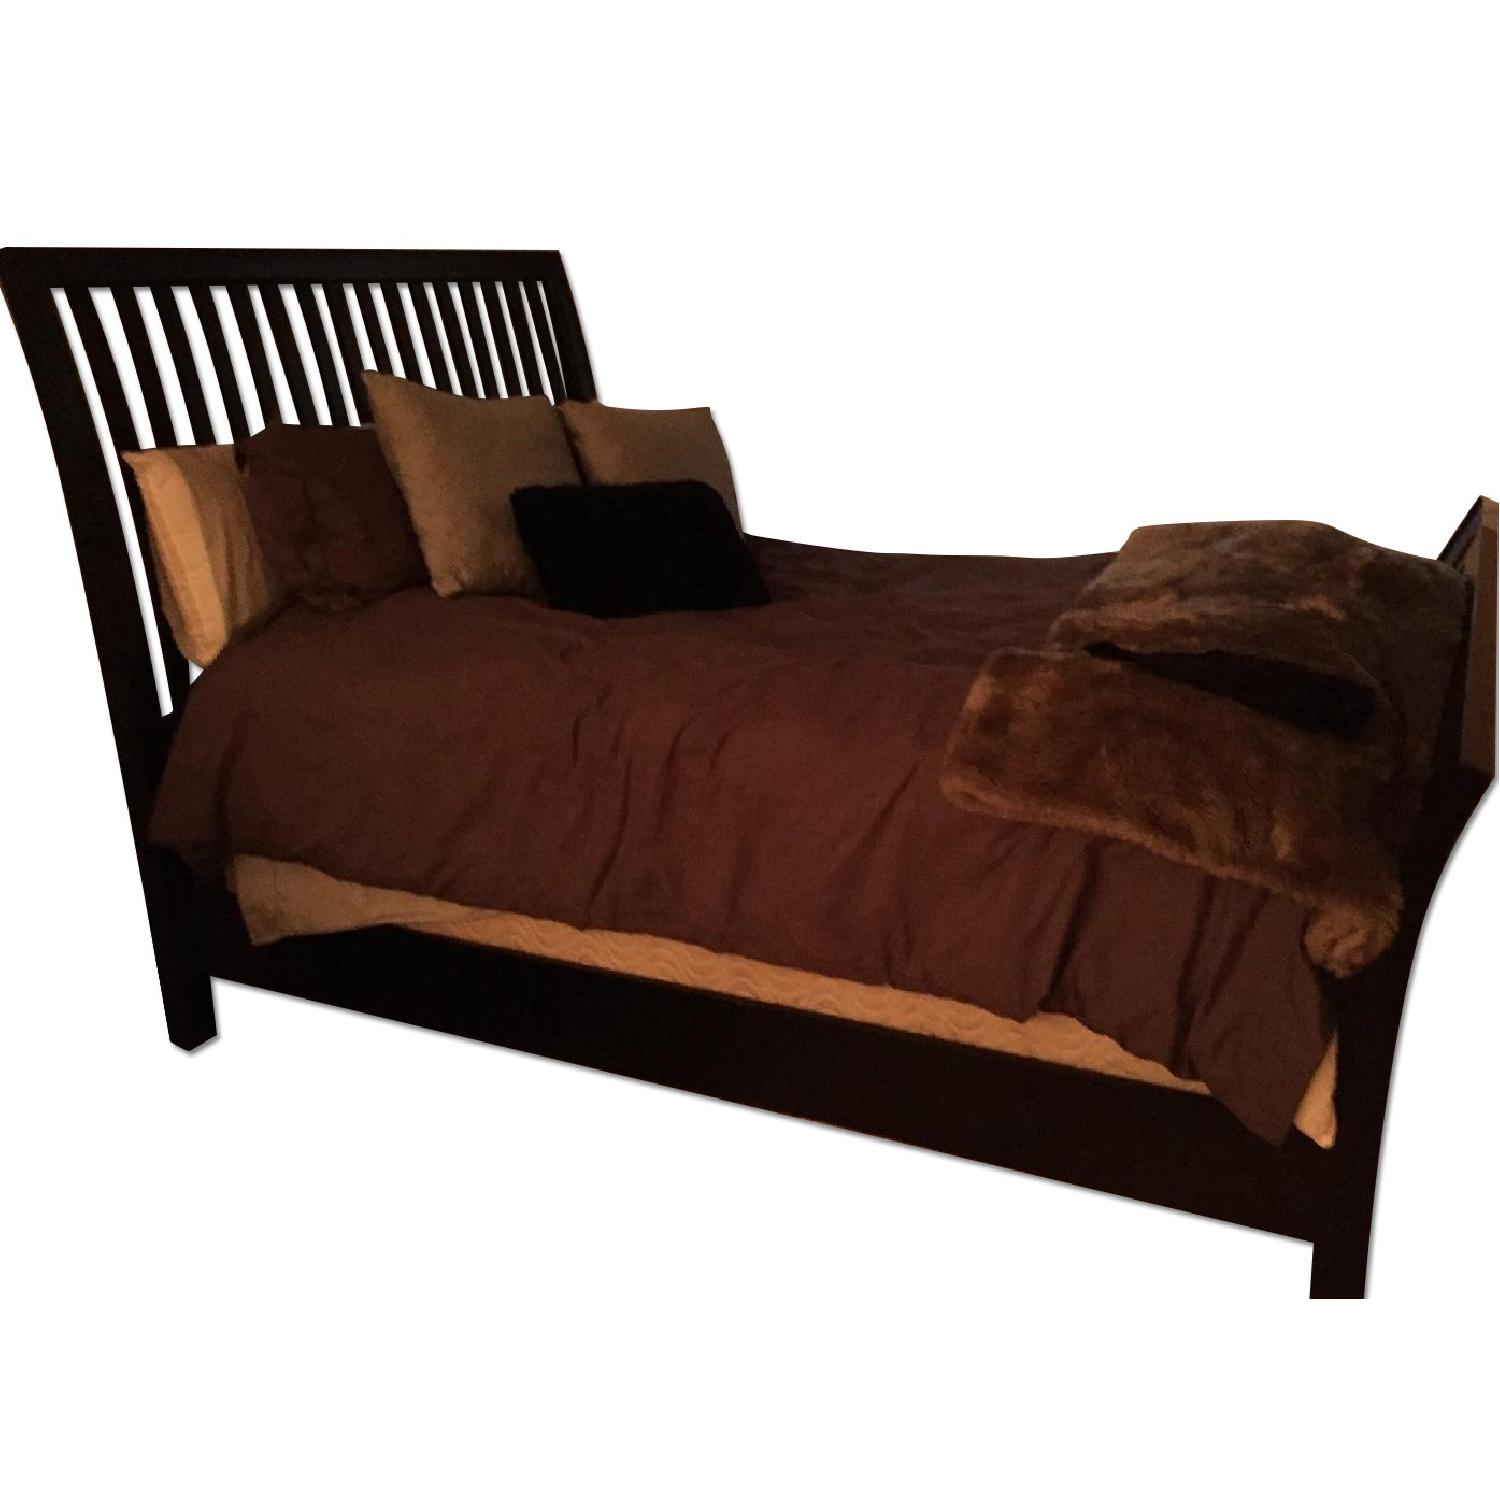 Rooms To Go Queen Size Wood Bed Frame - image-0